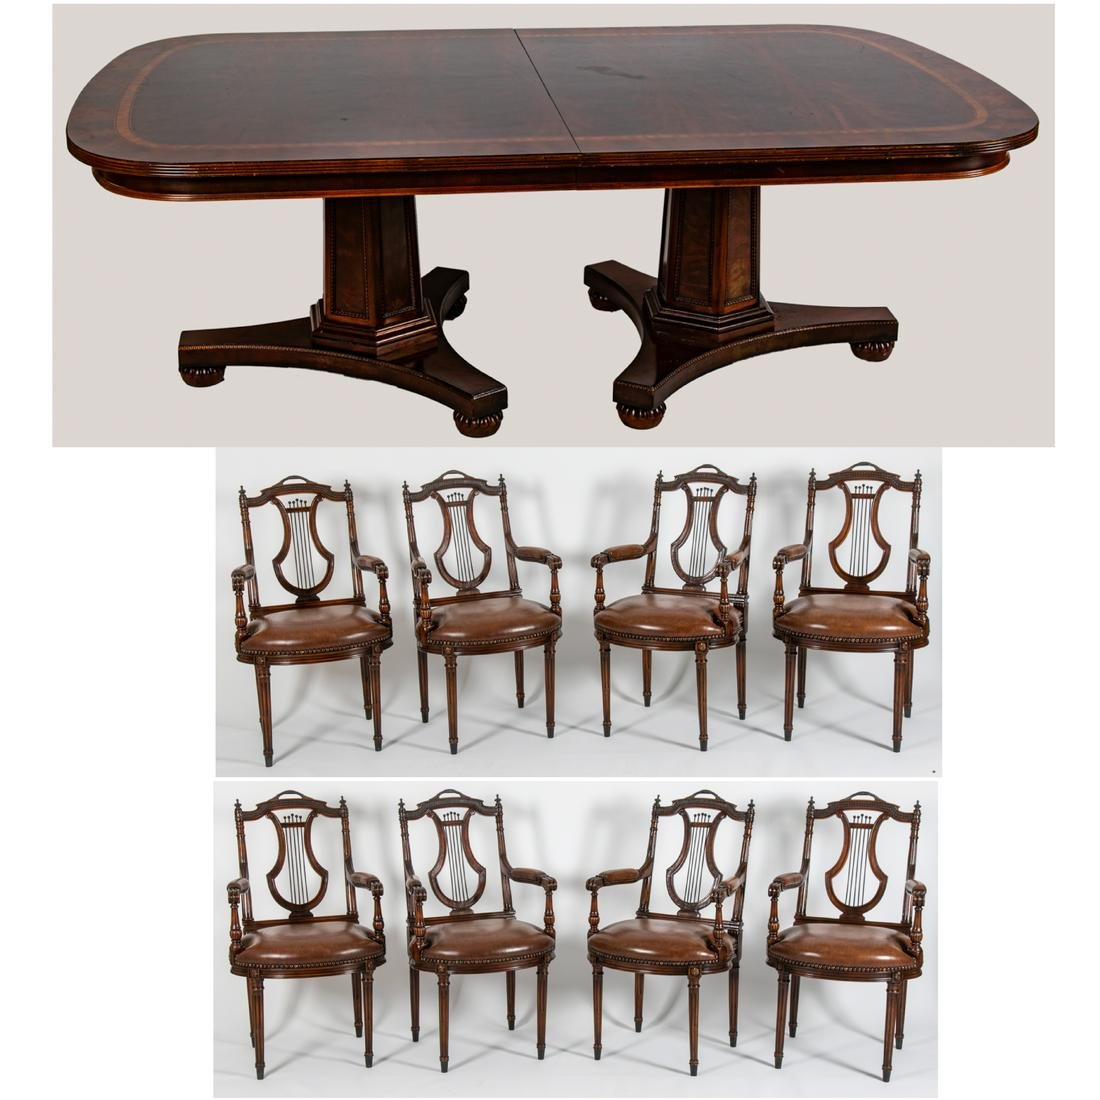 A Henredon Natchez Collection Dining Table, 20th